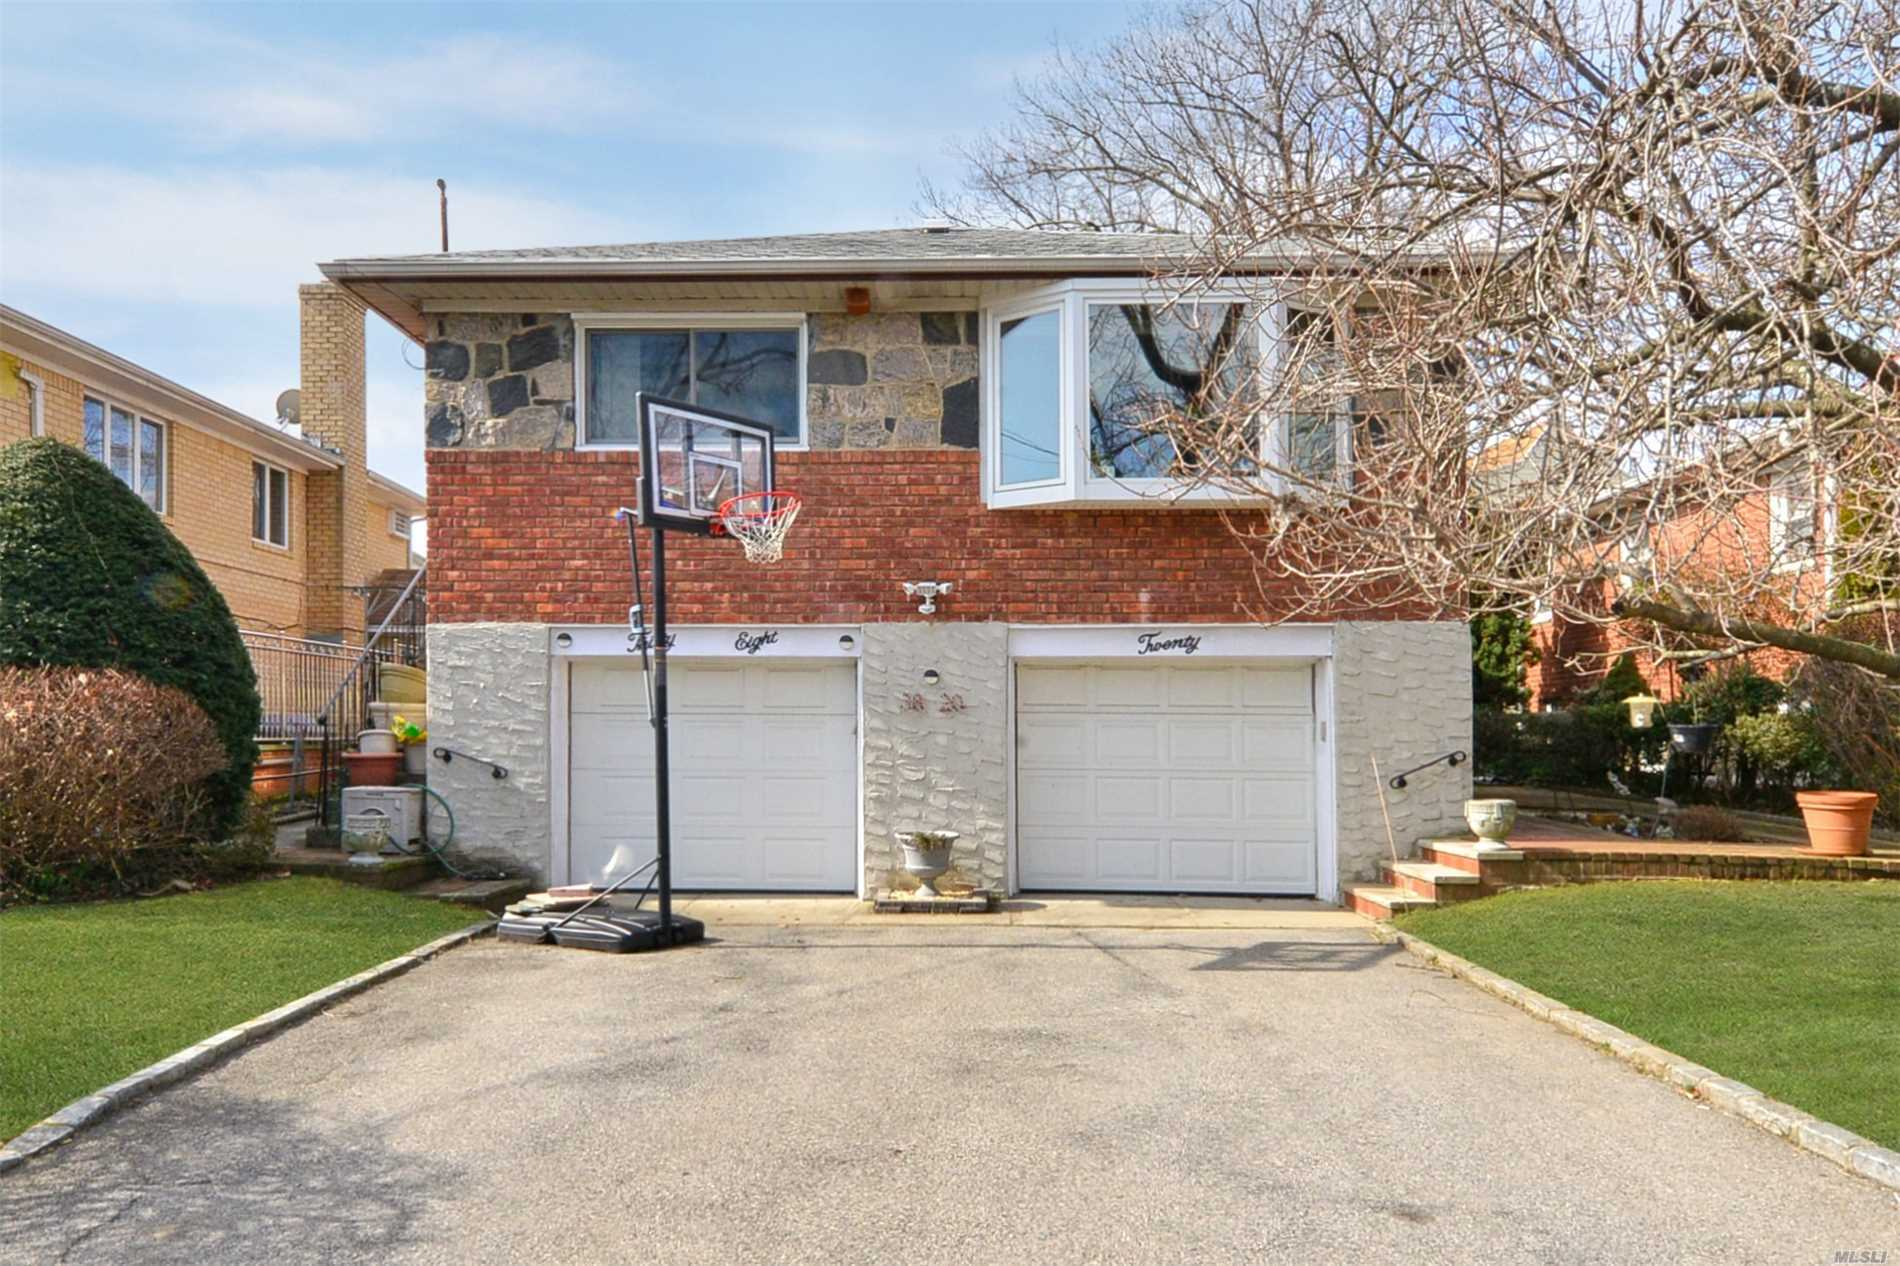 Located On One Of The Prettiest Blocks In Bayside- This Detached, Brick High Ranch Has Been Totally Renovated From Top To Bottom. New Kitchen, Bathrooms, Windows, Roof, Etc. Blocks Away From Lovely Bay Terrace Shopping Center, Bell Blvd, Bayside Lirr, Buses & Easy Access To All Major Highways. Sd 26- P.S. 41, Ms 158,  And Bayside H.S.